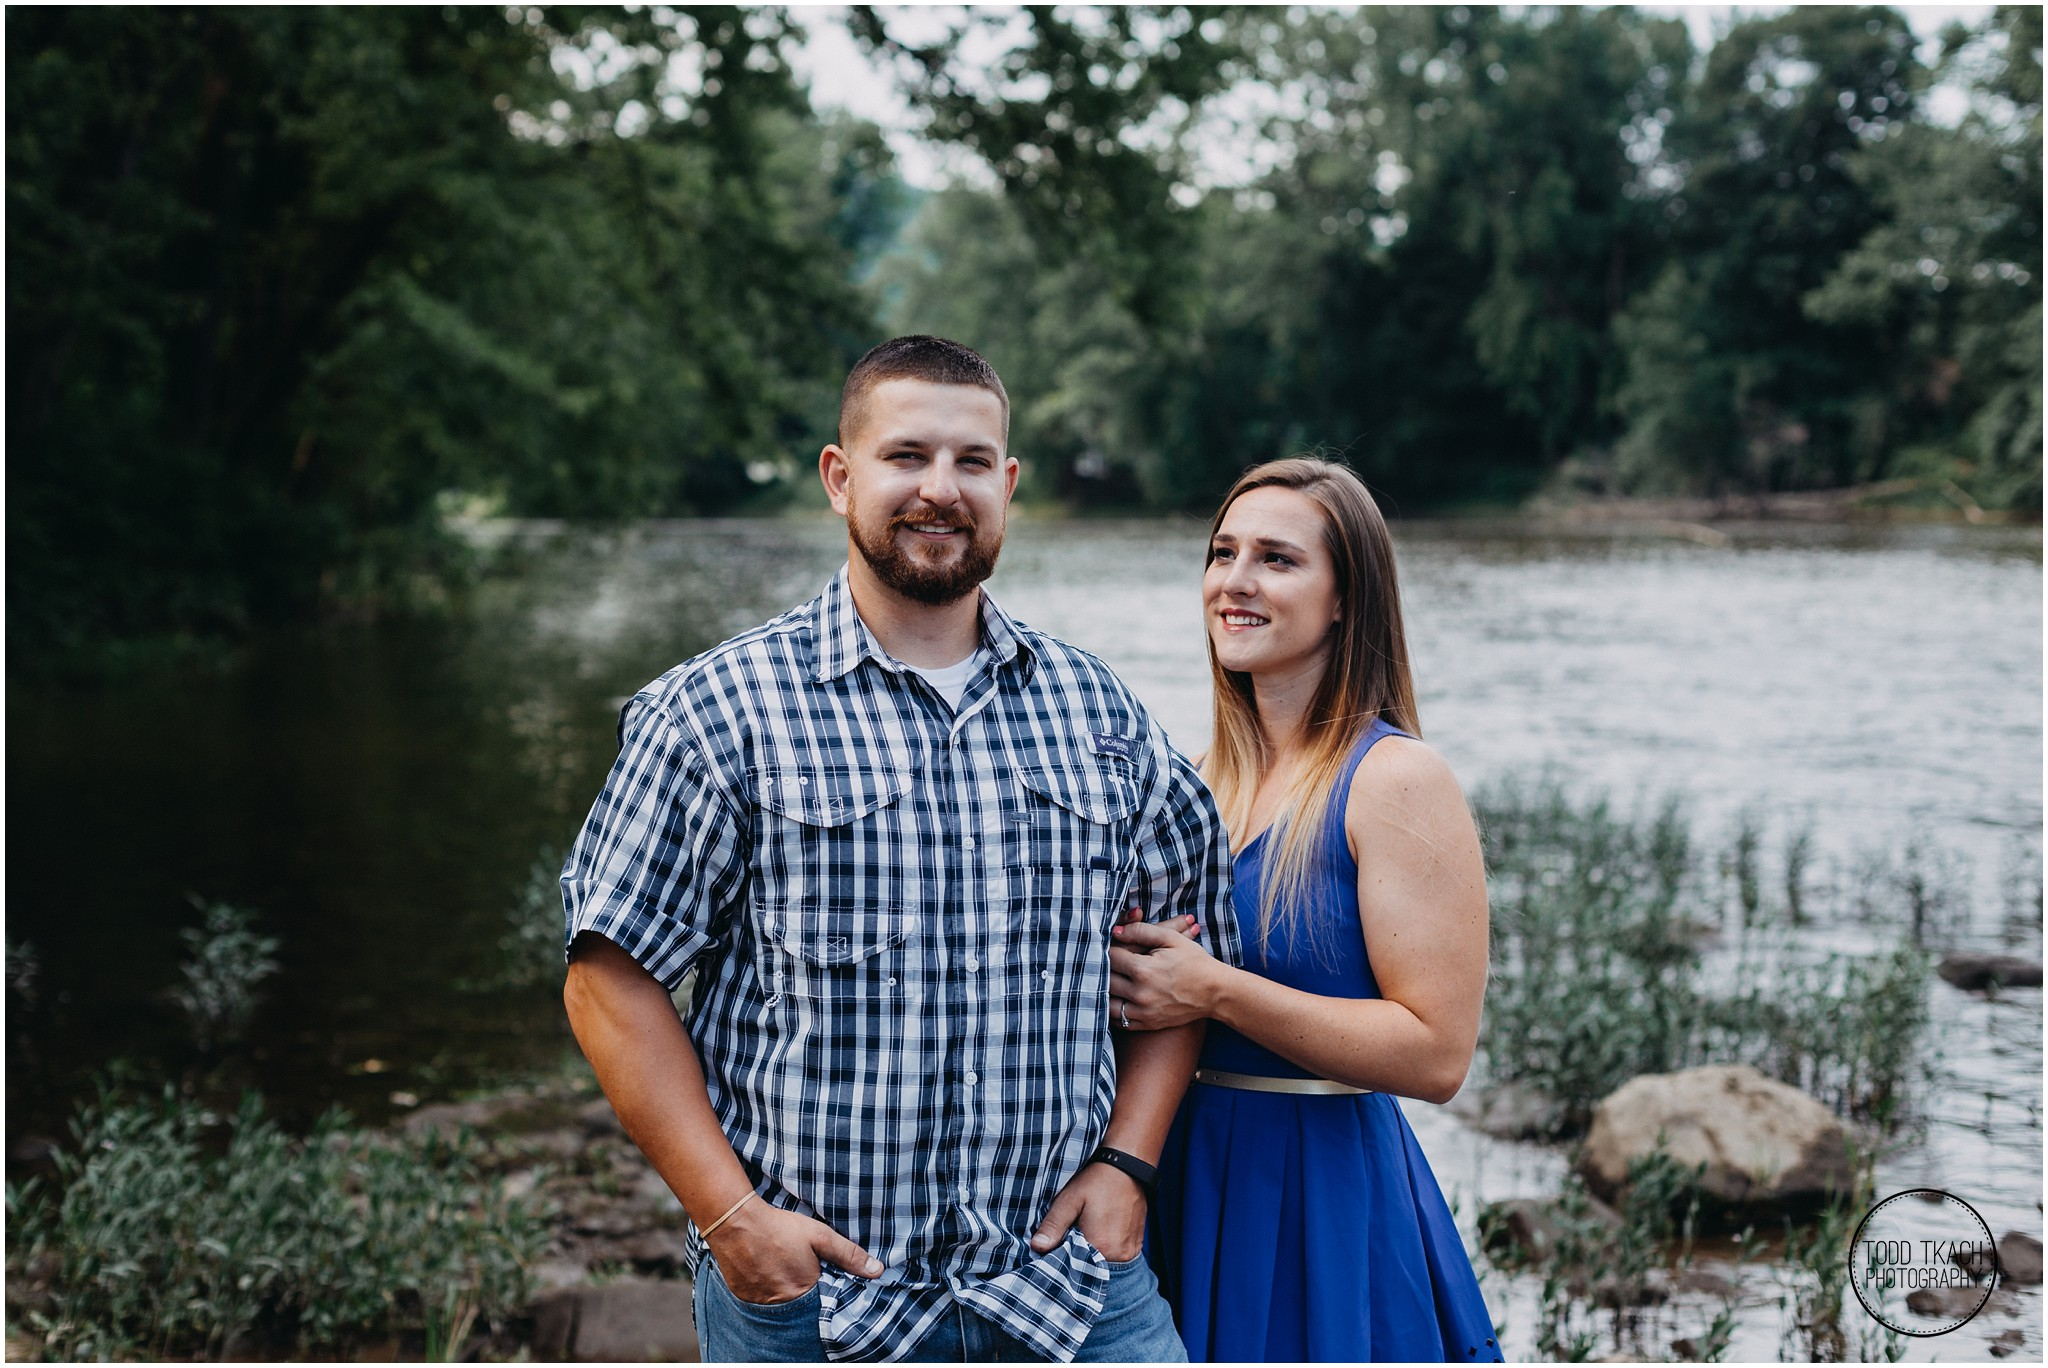 Kim & Brandon Engagement - Water's Edge Portrait